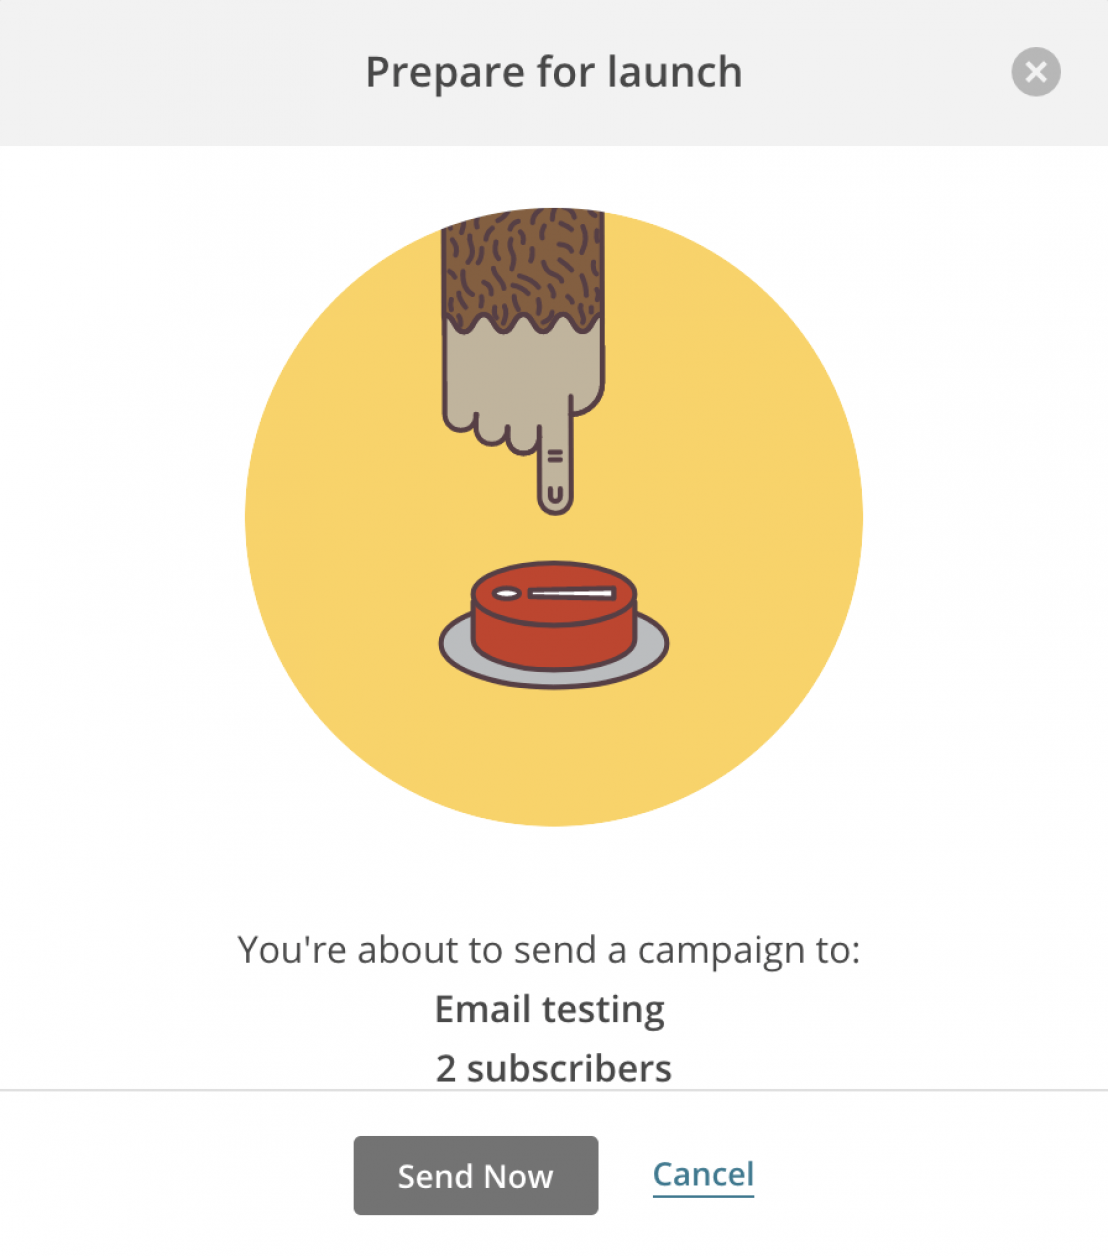 Prepare for launch - sending an email through MailChimp